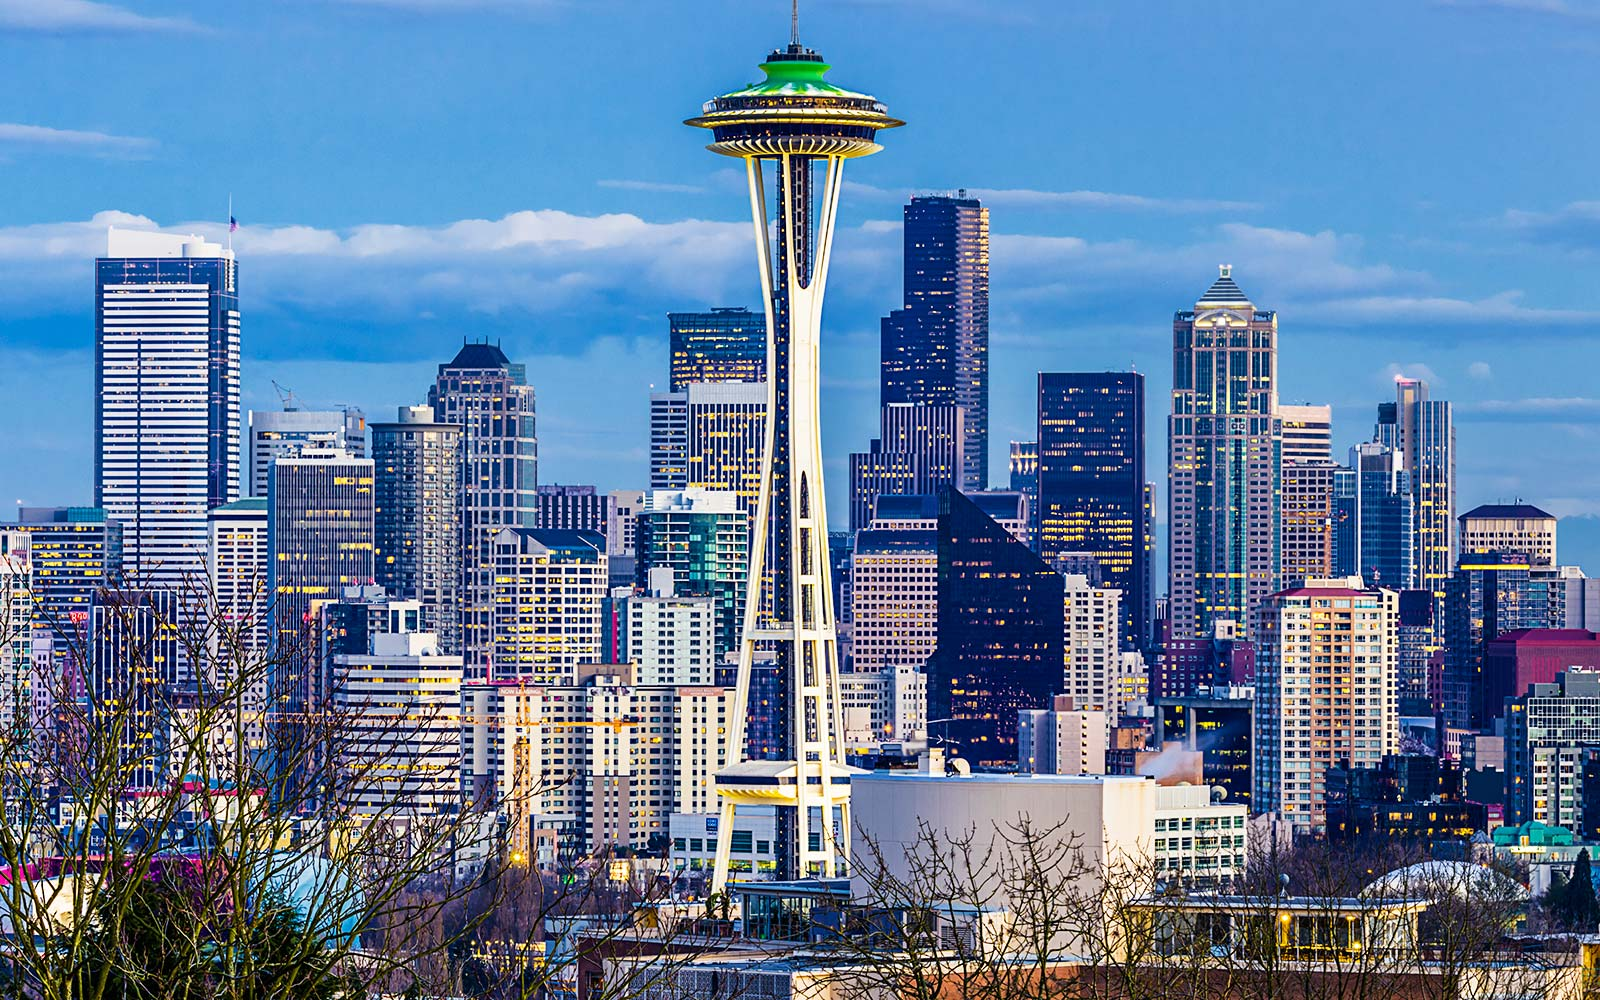 Seattle Space Needle and the downtown skyline